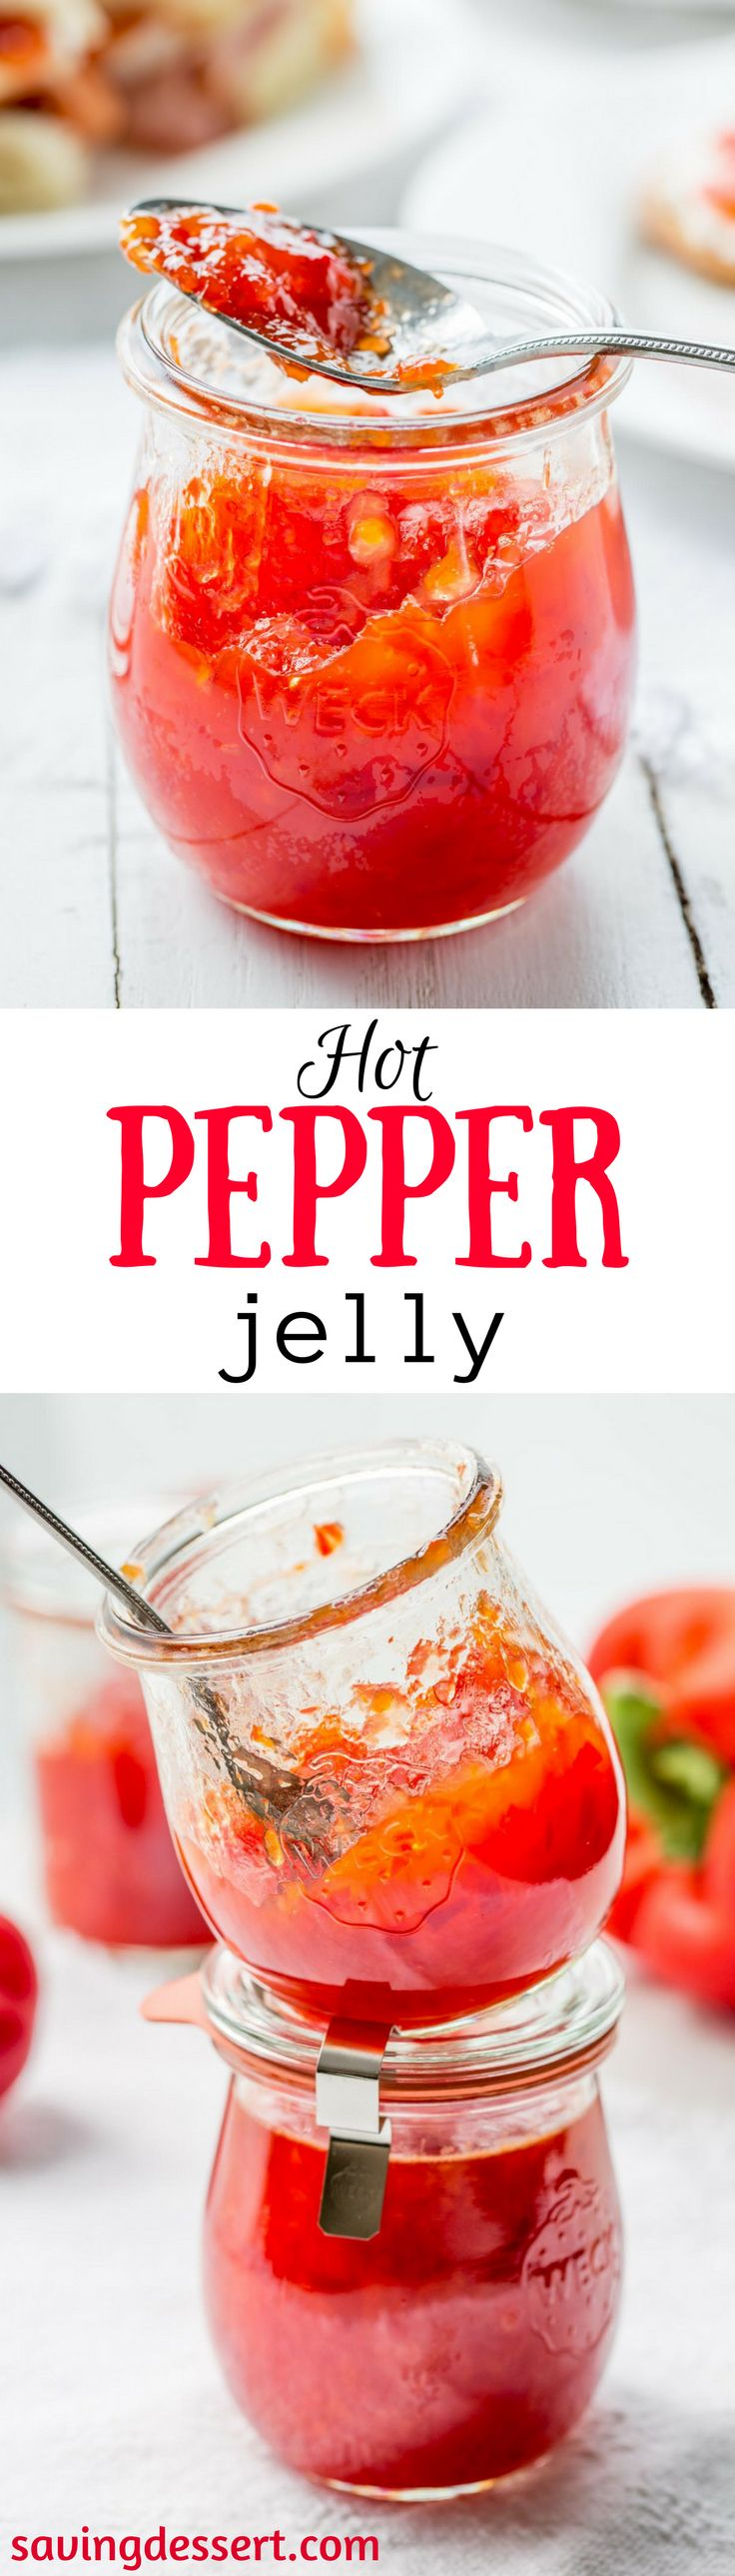 Hot Pepper Jelly ~ spicy, hot red cherry peppers and sweet red bell peppers combine in this easy and delicious jelly ... perfect for the season!